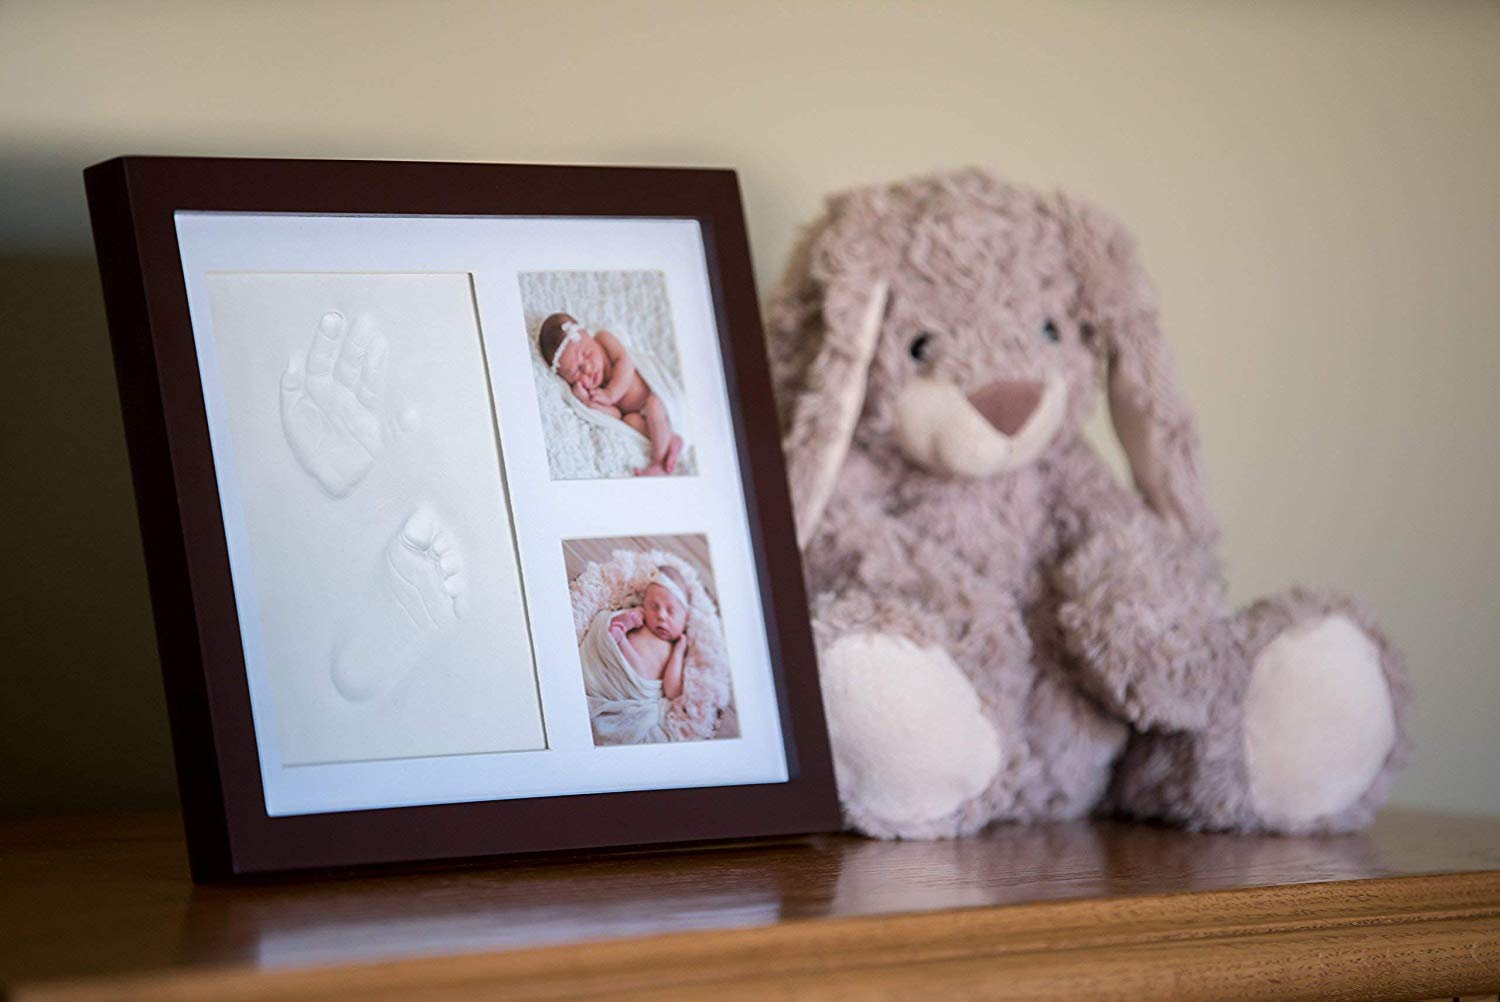 Baby Handprint Kit |NO Mold| Baby Picture Frame Newborn Baby Keepsake Frames Perfect for Baby Boy Gifts,Top Baby Girl Gifts Baby Shower Gifts Baby Footprint kit